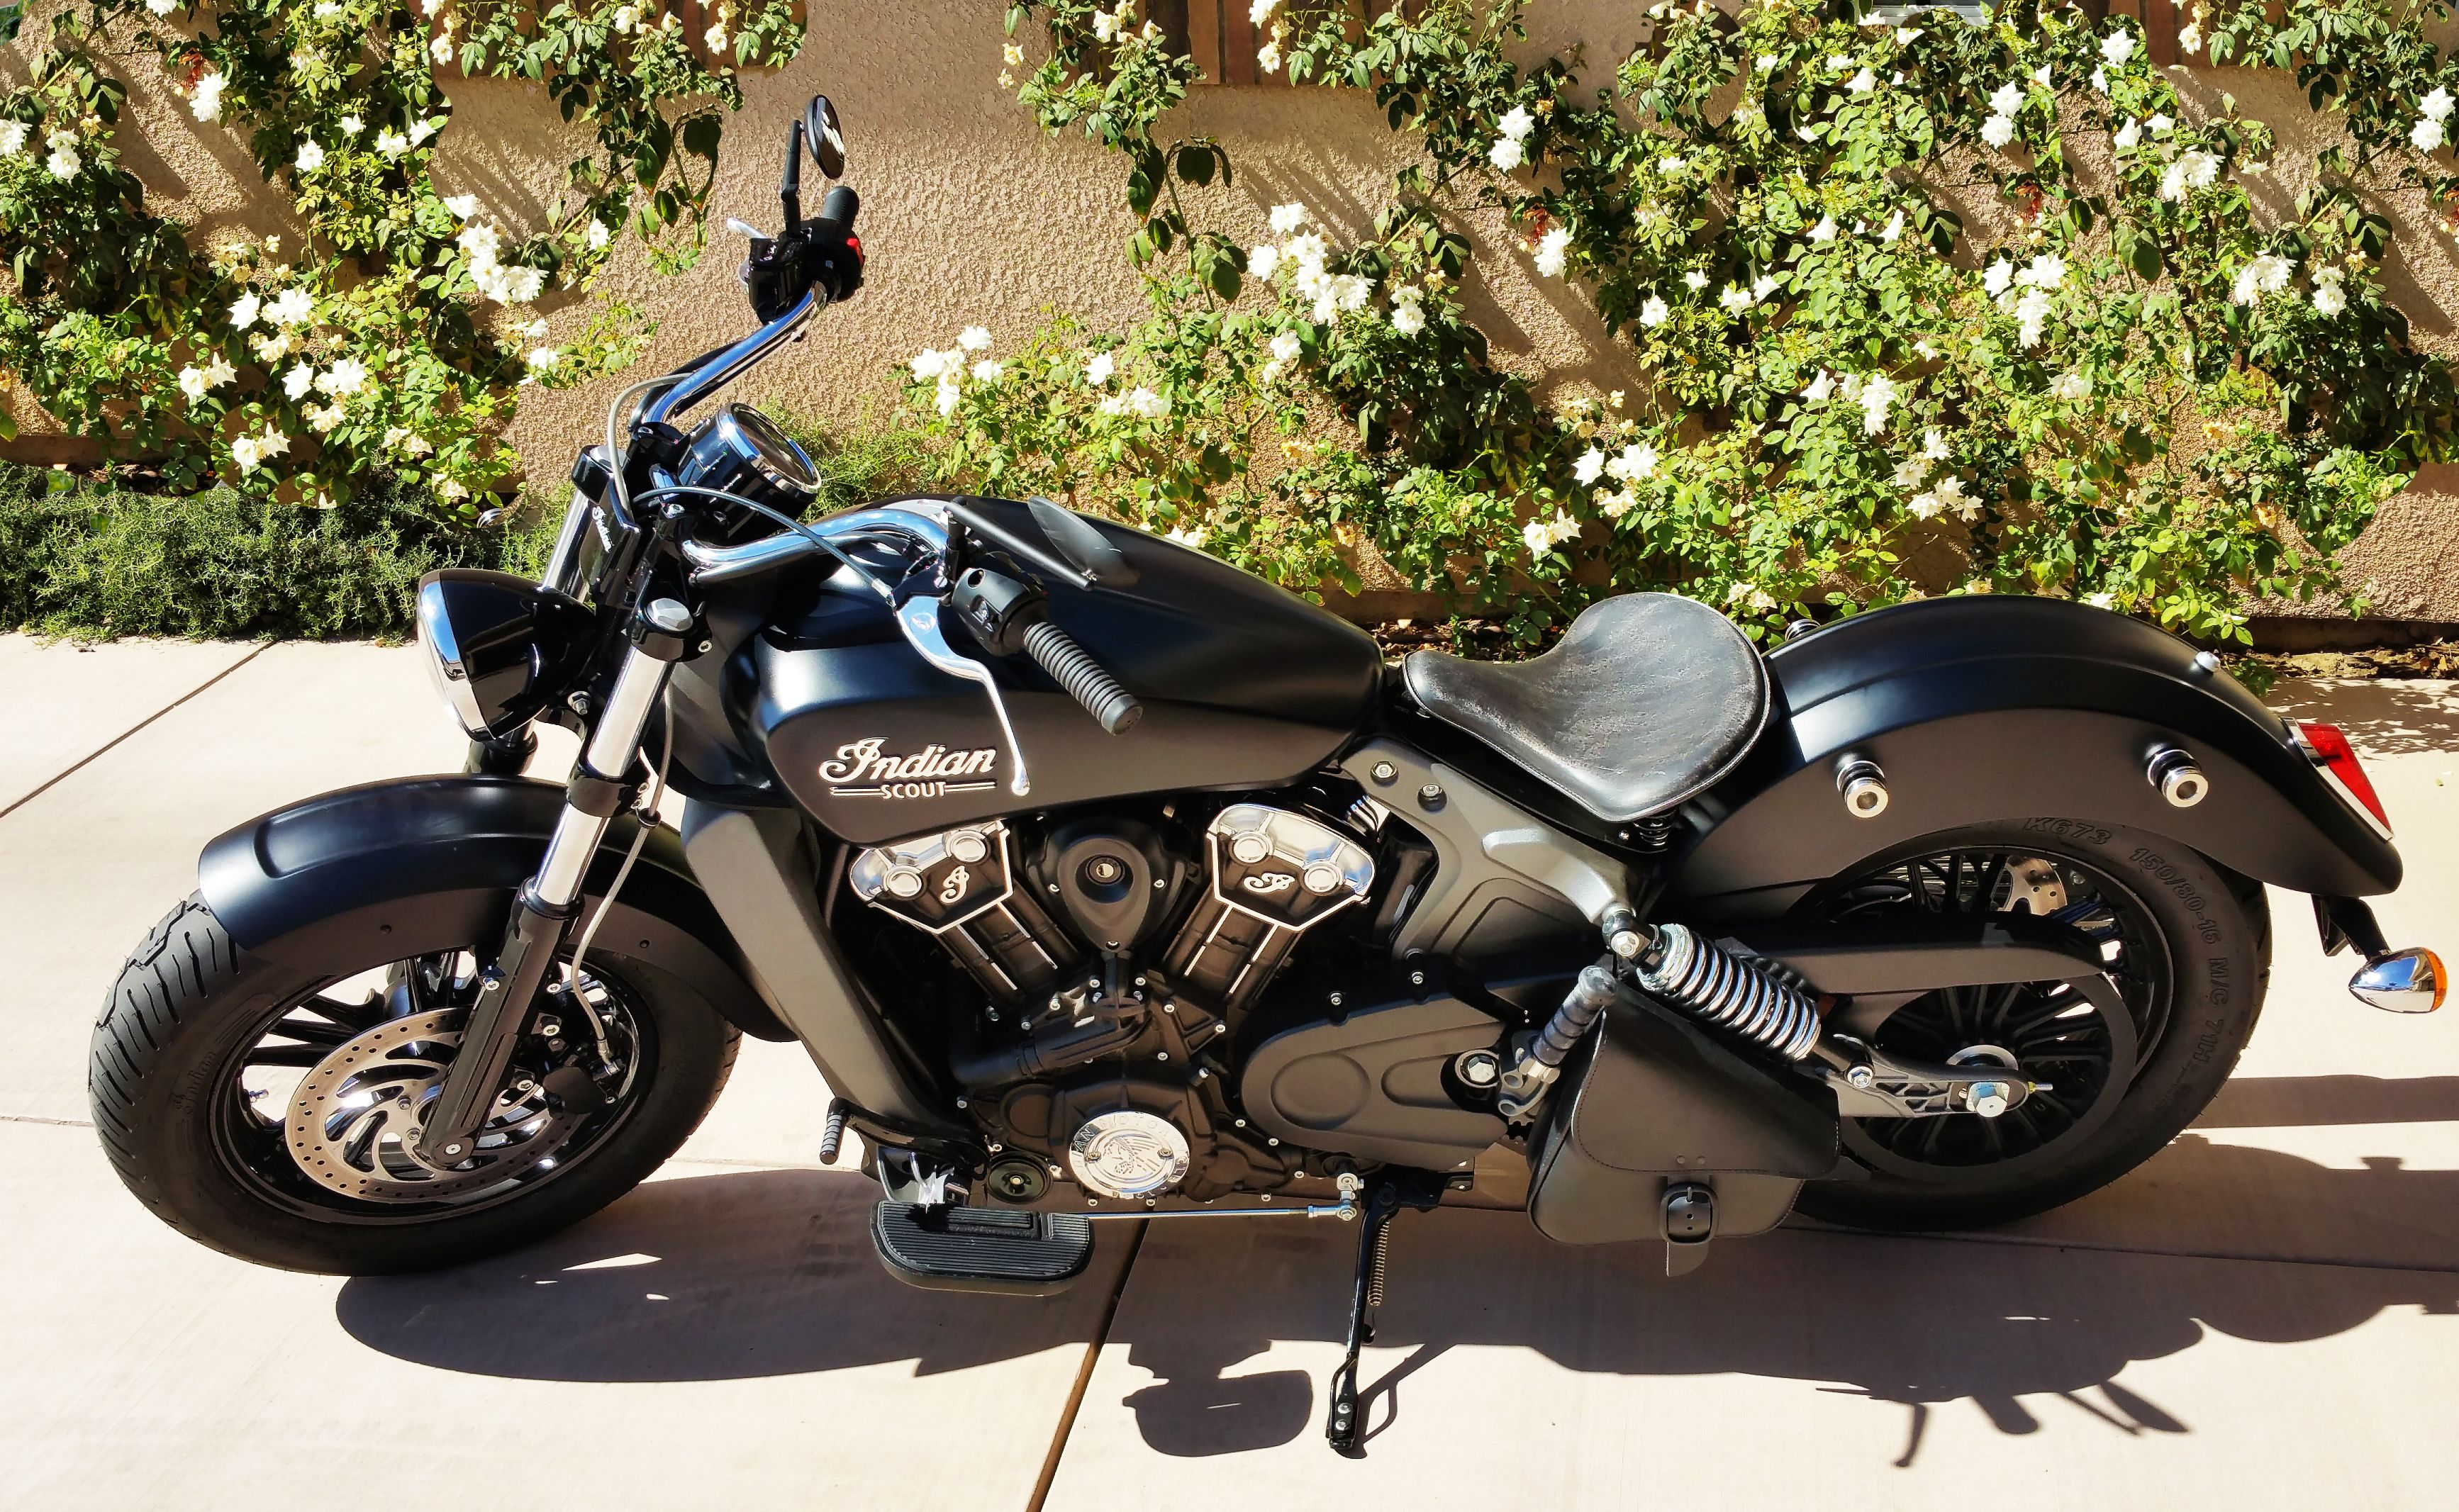 Indian Scout Spring Seat 2015 2020 Indian Scout Indian Motorcycle Scout Indian Motorcycle [ 2133 x 3468 Pixel ]